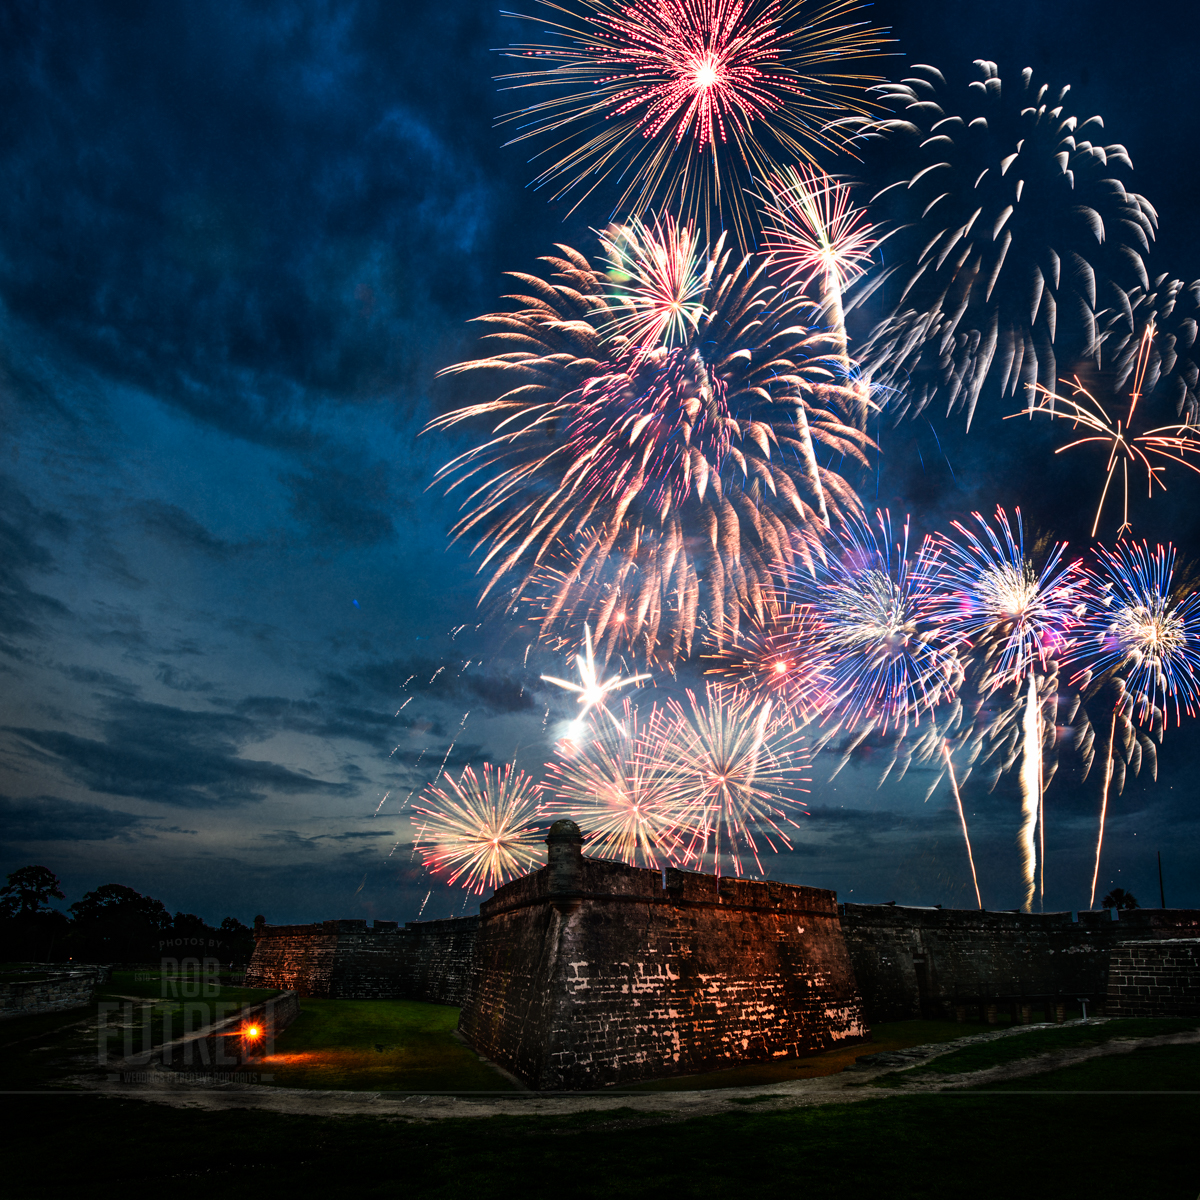 4th of July fireworks over the Castillo De San Marcos in St. Augustine, FL.